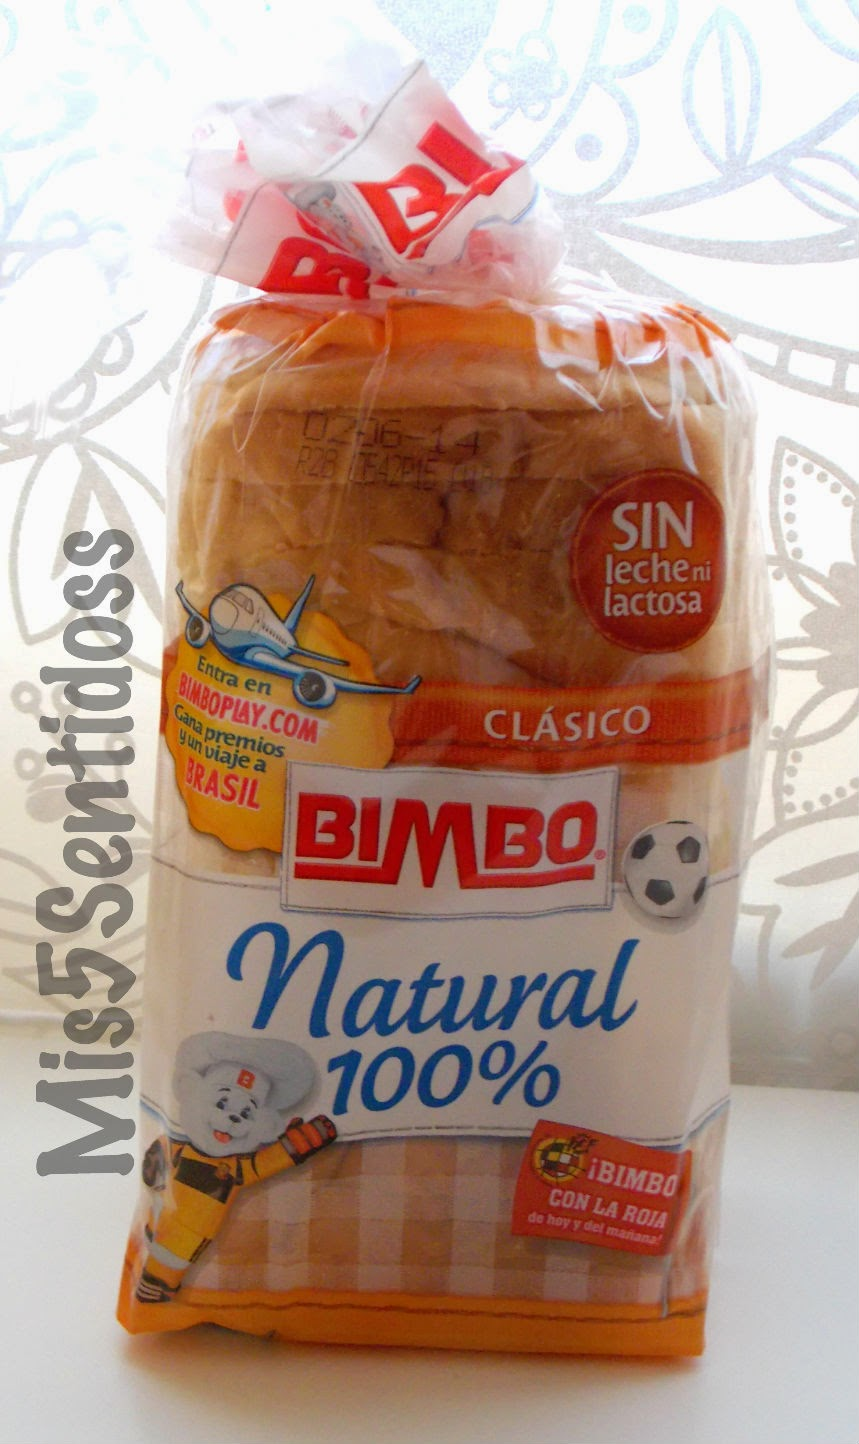 Degustabox mayo 2014 Bimbo Natural 100%